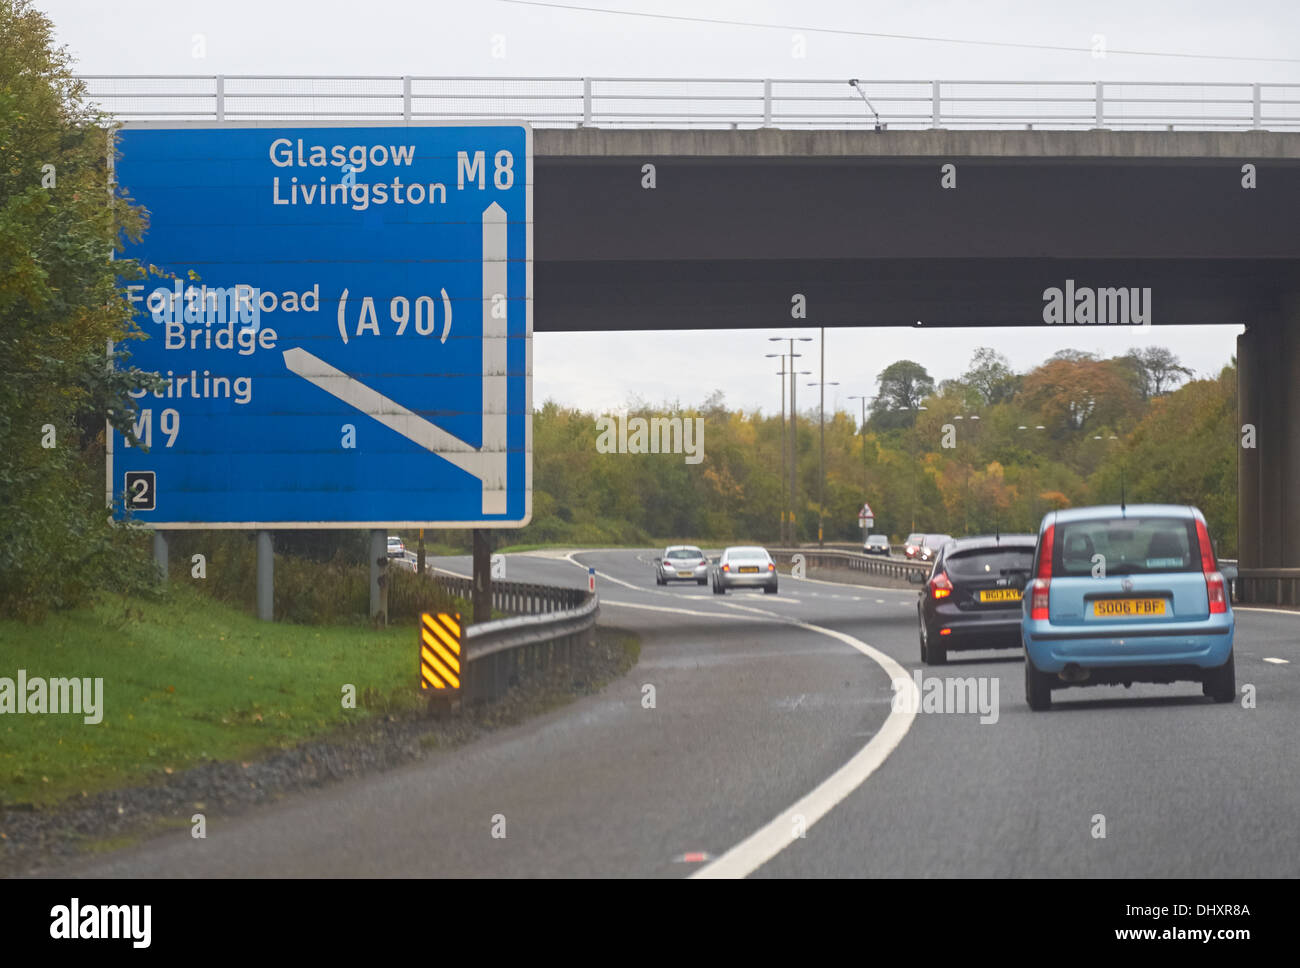 Cars approaching the Forth Road Bridge turning on the M8 to Glasgow, Scotland,UK. - Stock Image